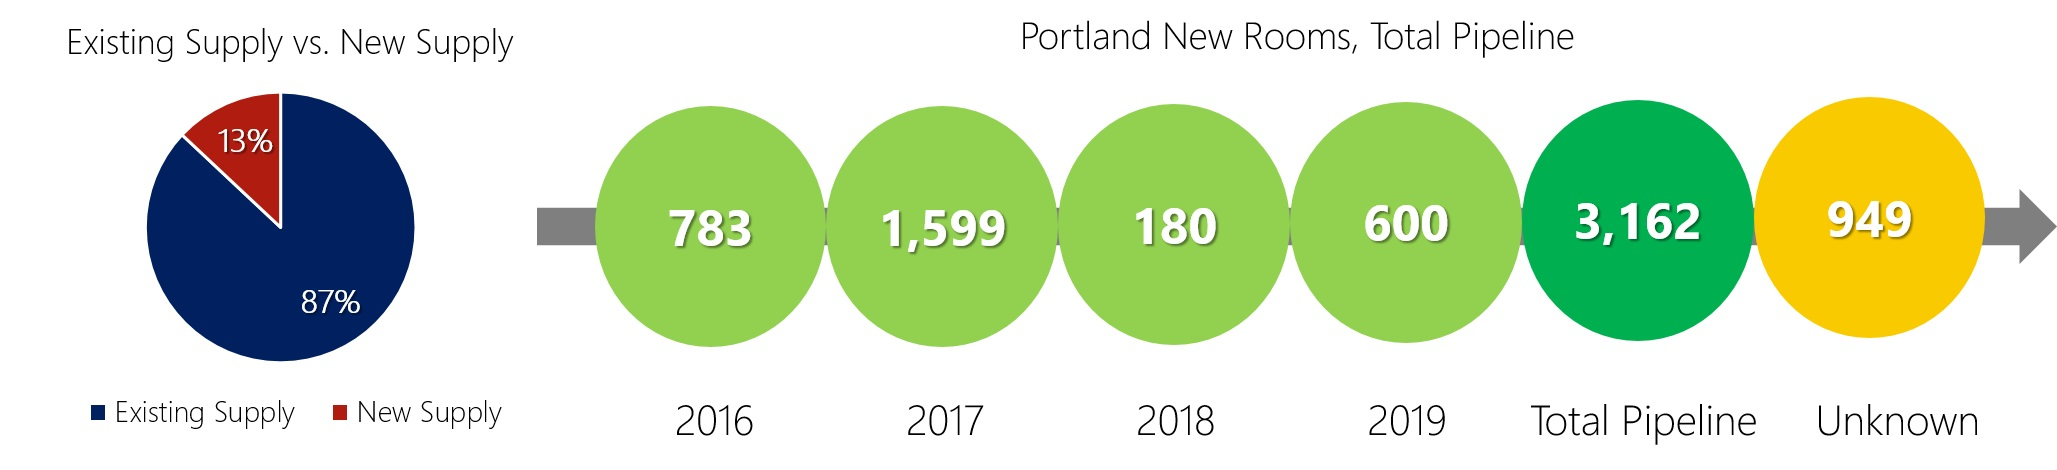 HVS Market Pulse: Portland, OR | By Desiree M. Flanary